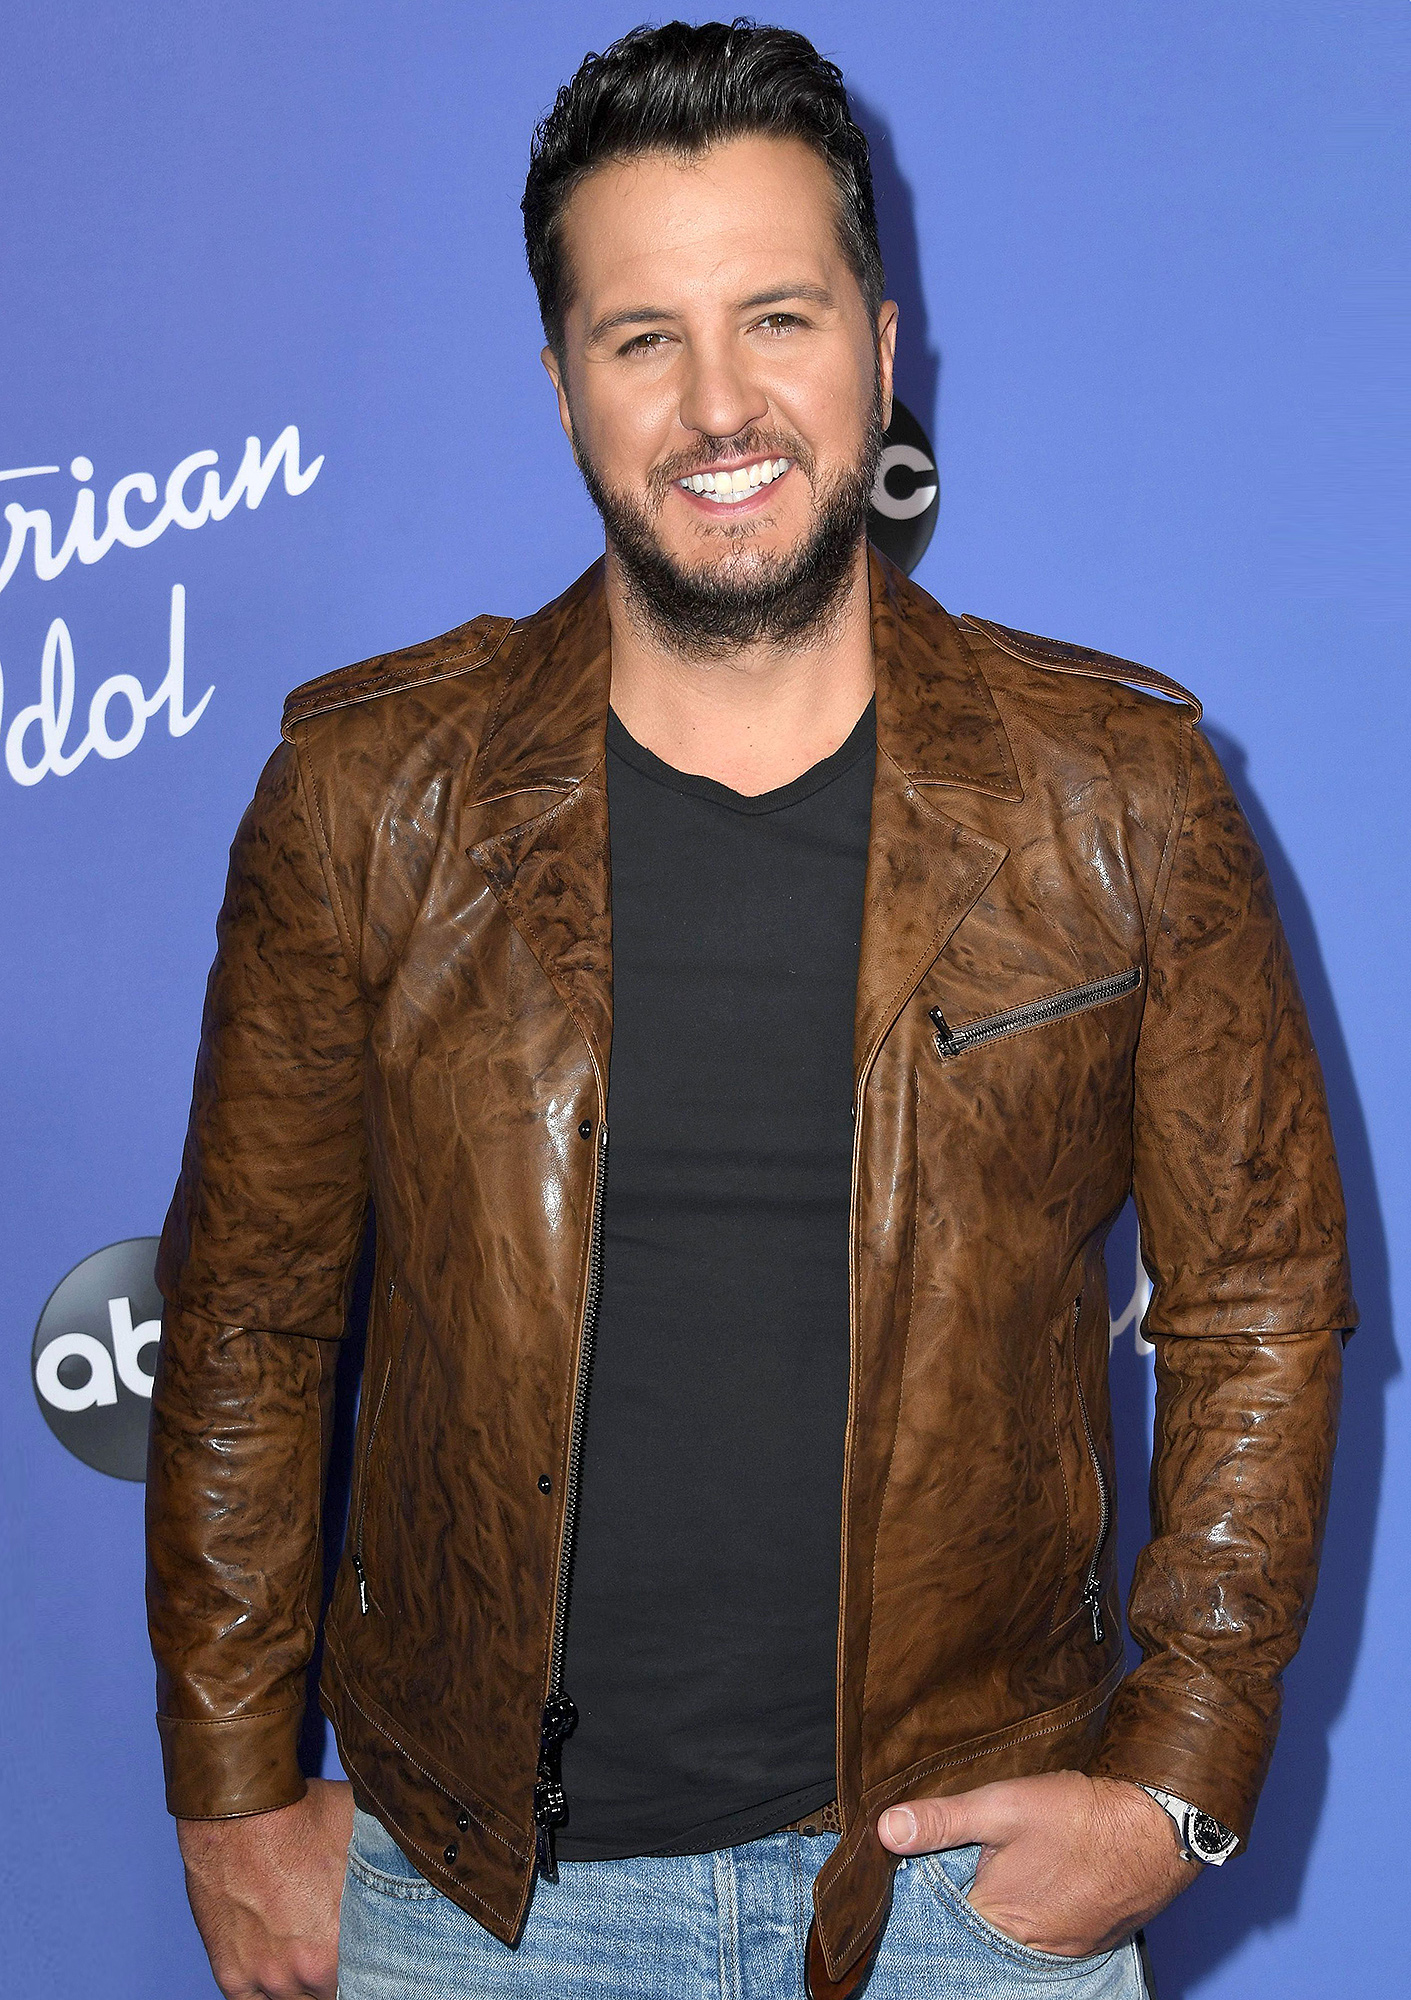 Neither Will Luke Bryan or Philip Sweet (for a Different Reason)